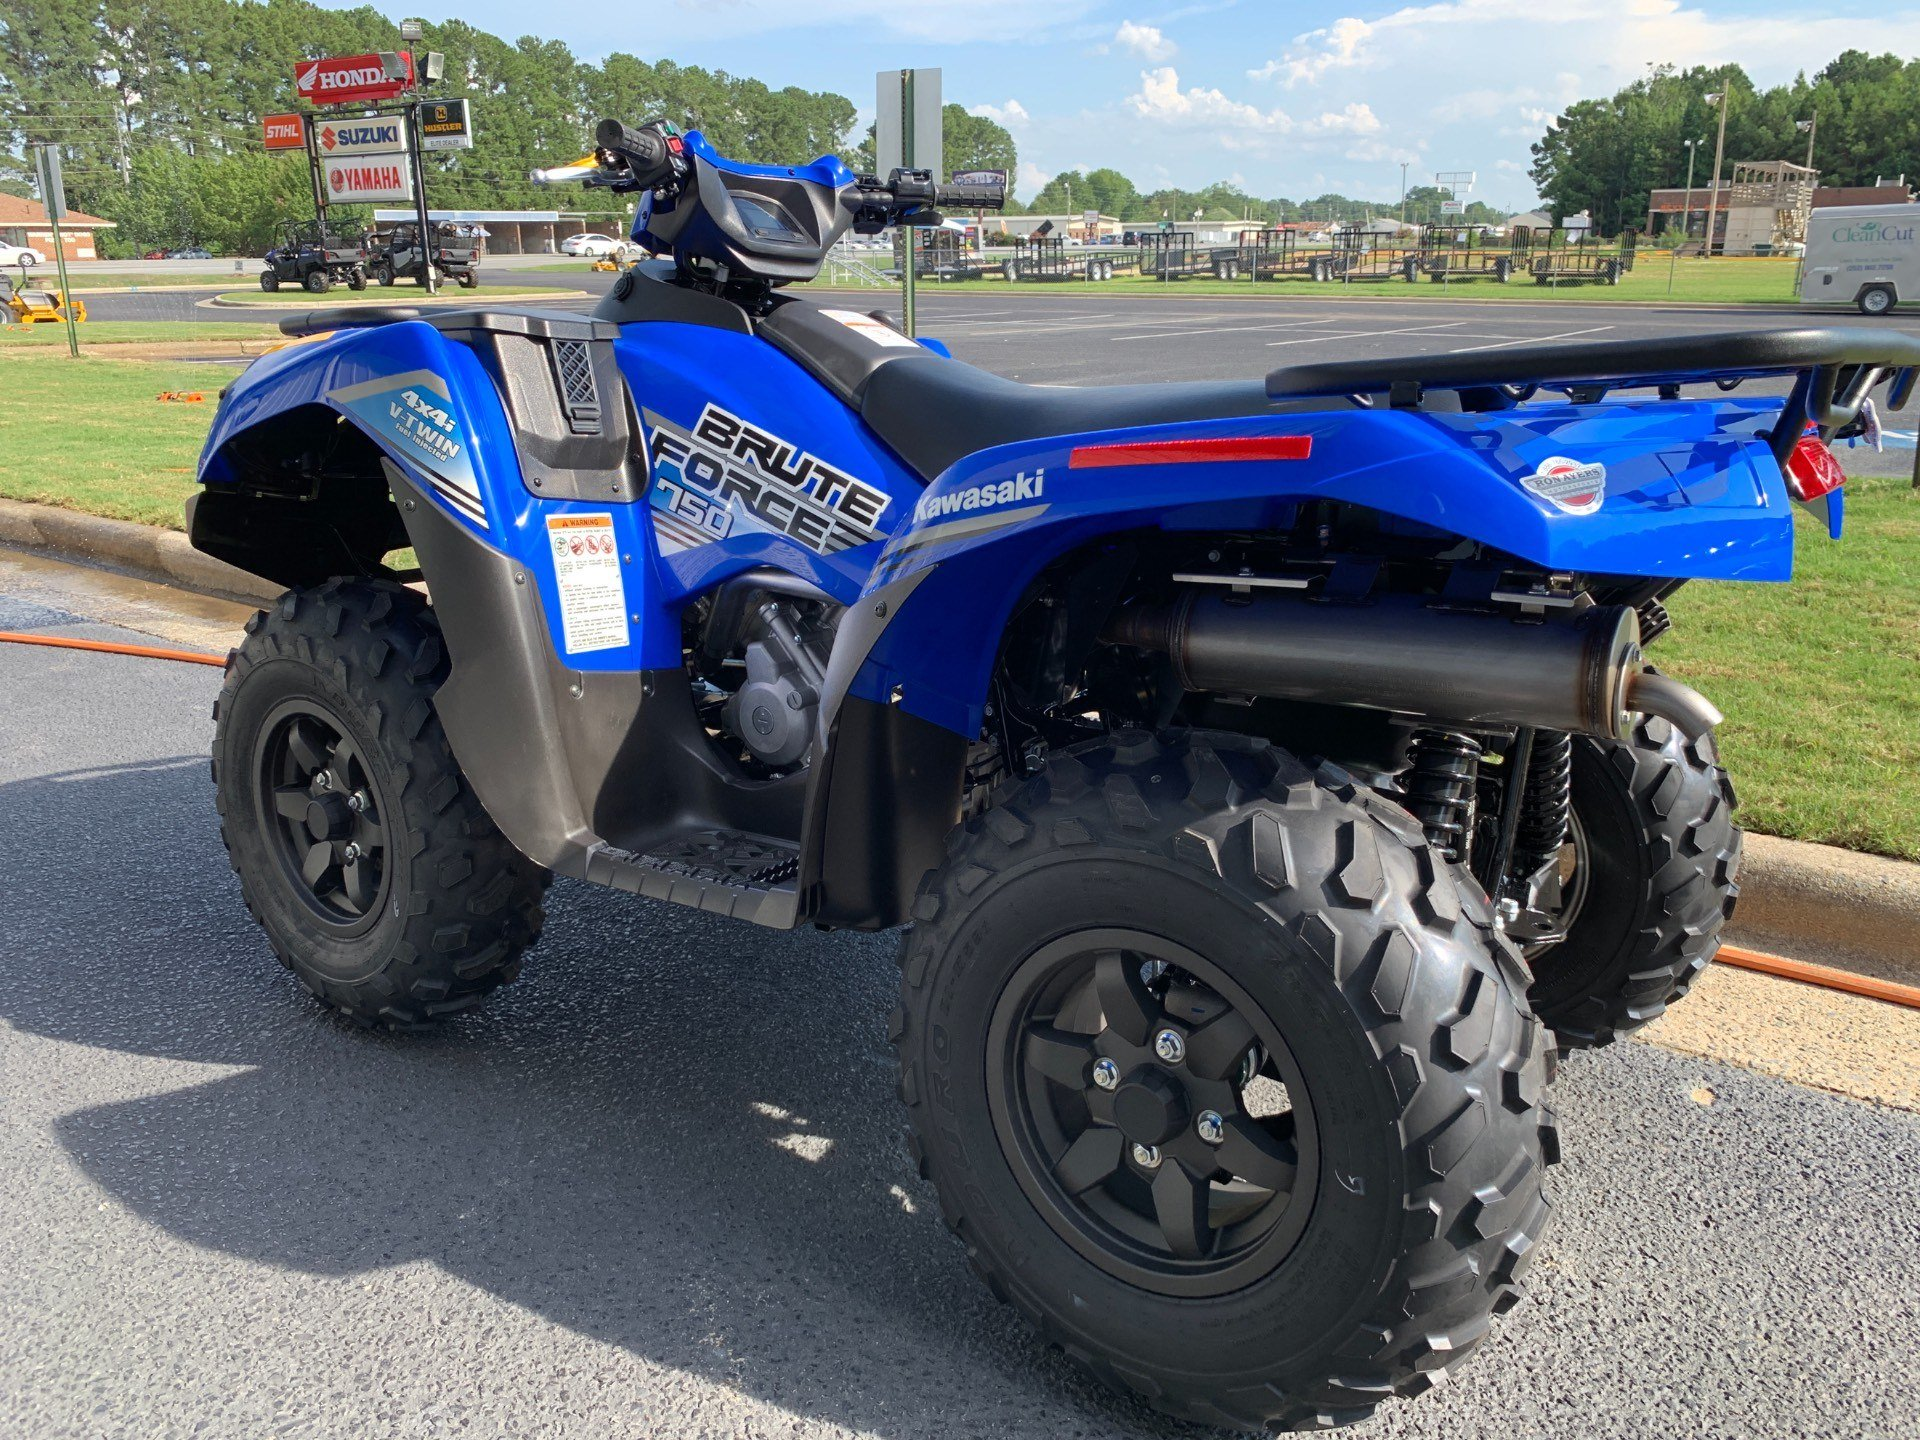 2020 Kawasaki Brute Force 750 4x4i EPS in Greenville, North Carolina - Photo 8